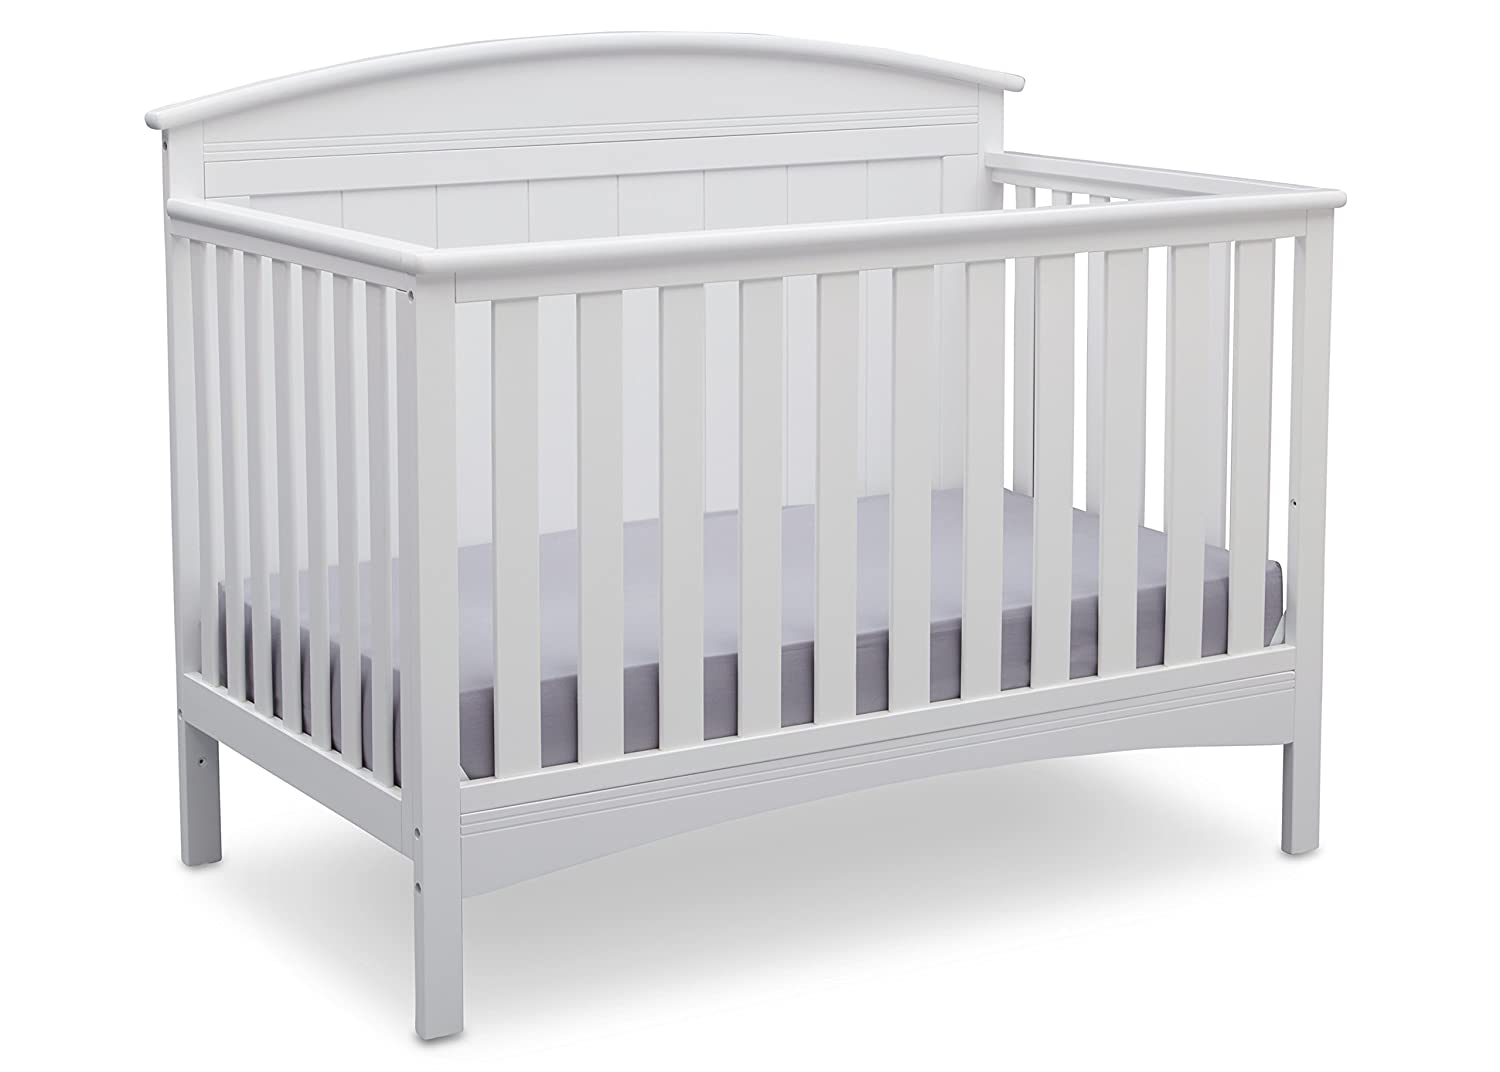 n children toddler royal crib princess cribs canopy l bed childrens delta s products white lil changer